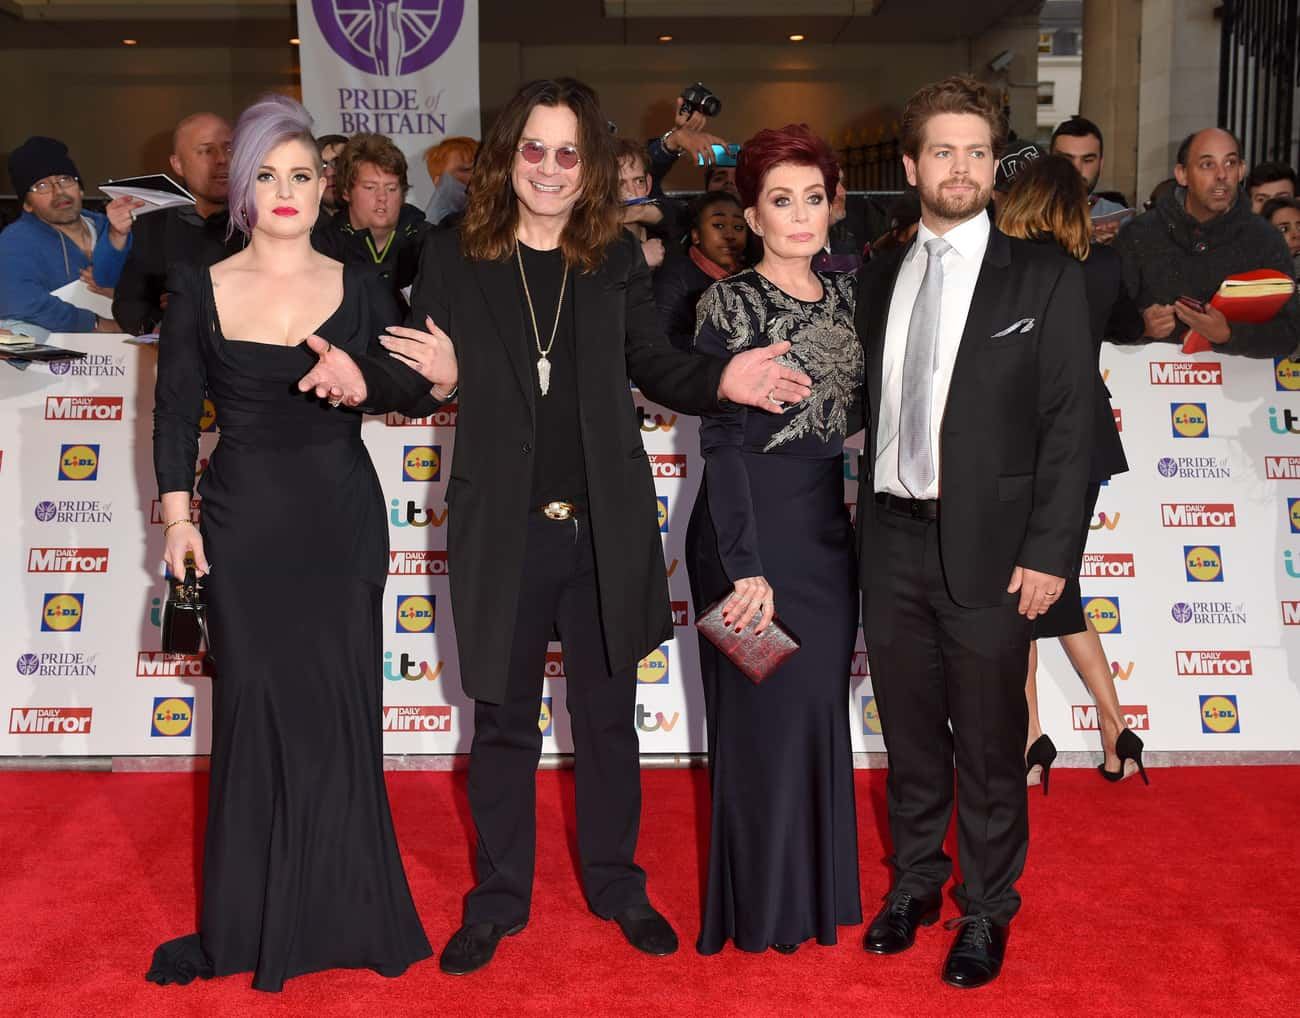 Ozzy Osbourne is listed (or ranked) 2 on the list Rock Stars with the Most Kids